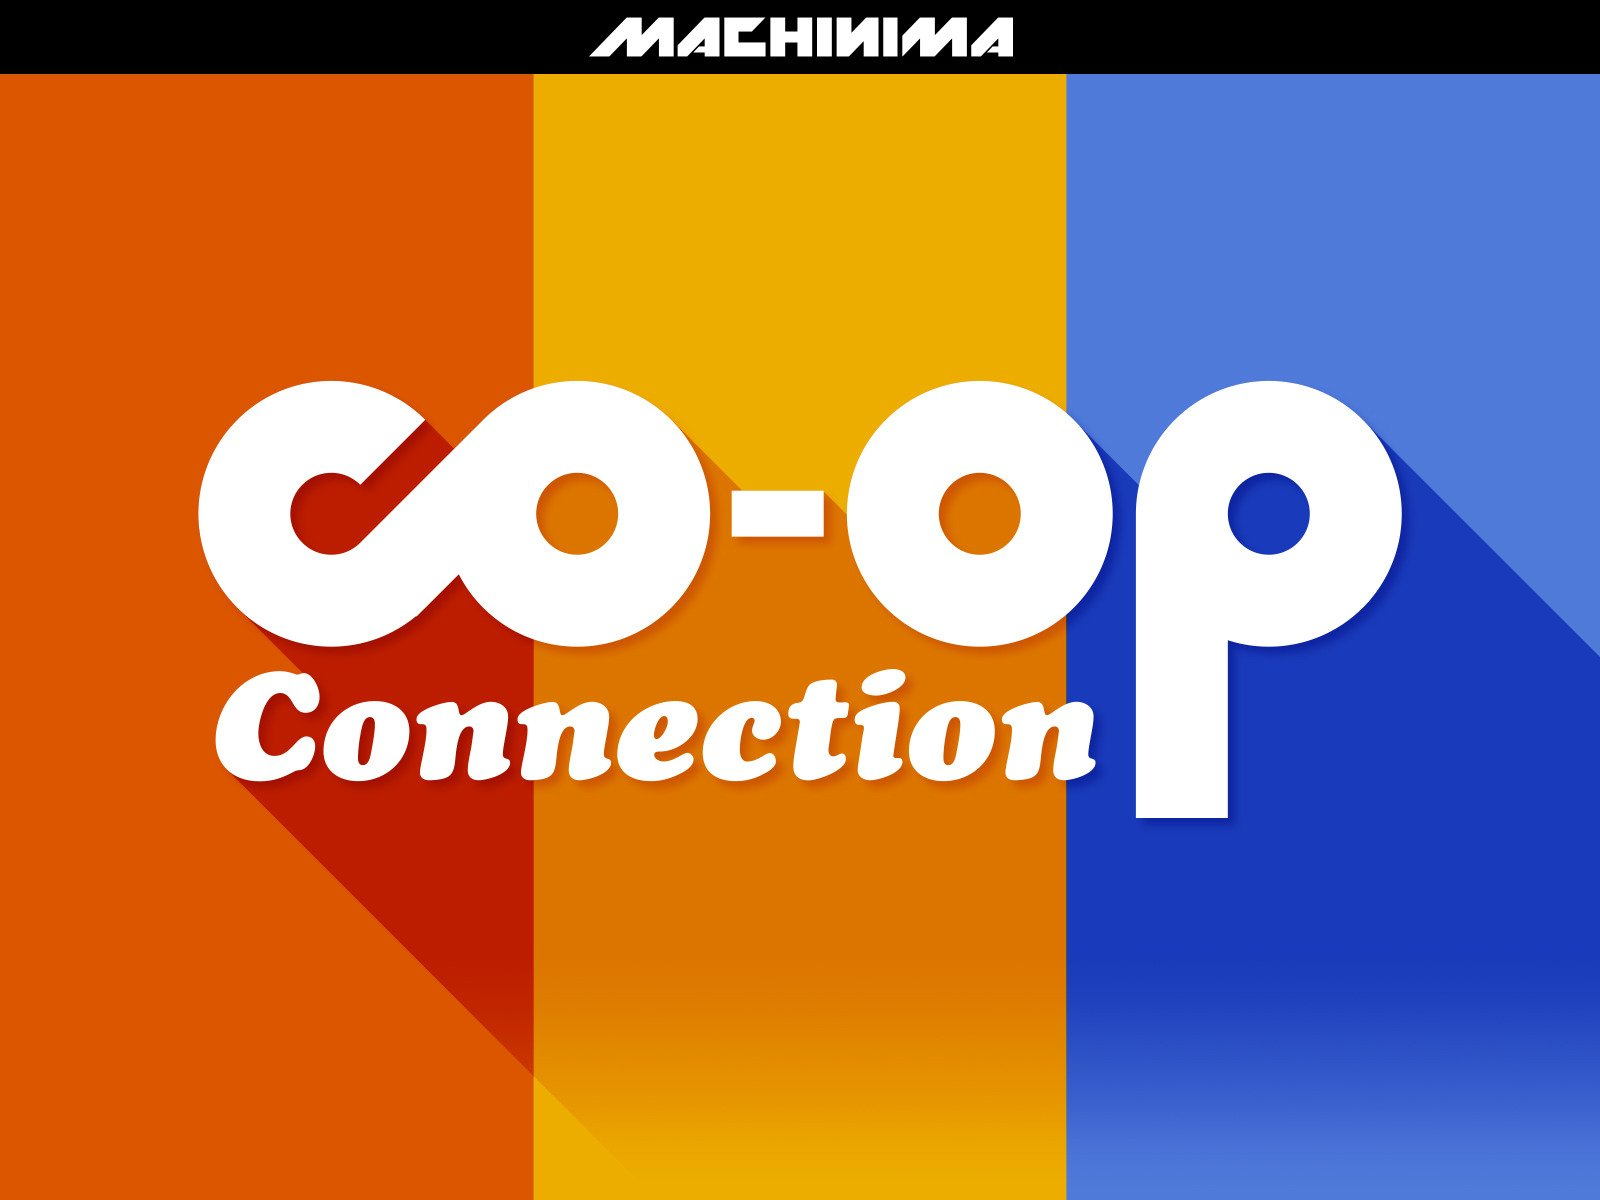 Co-op Connection - Season 1